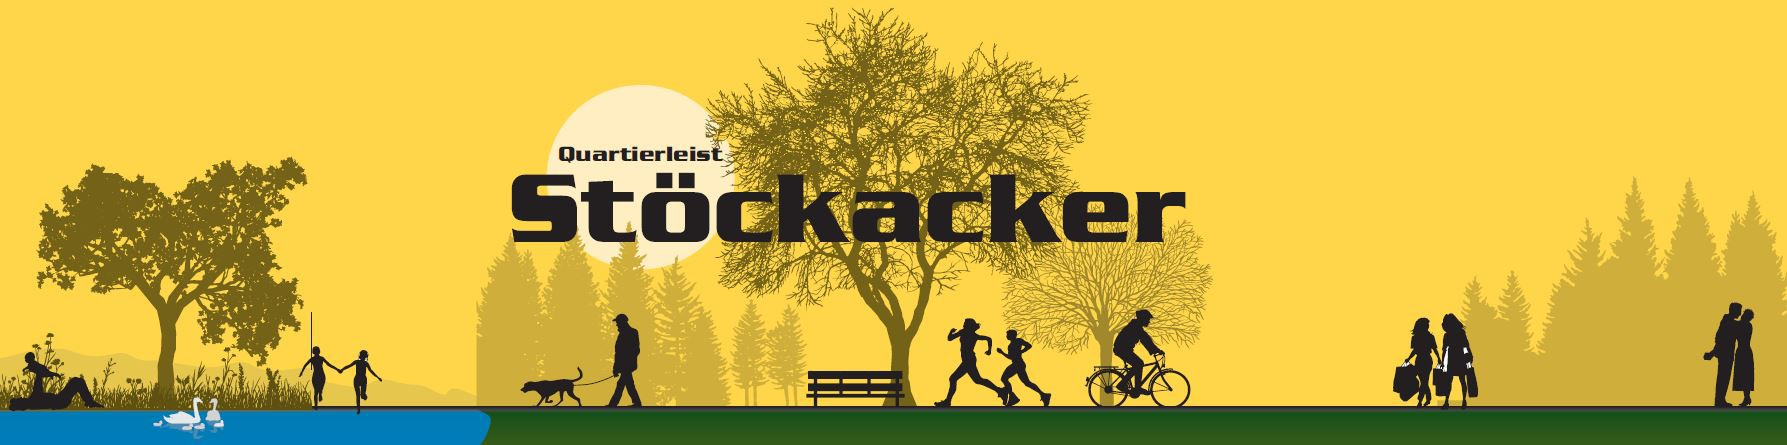 Quartierleist Stöckacker